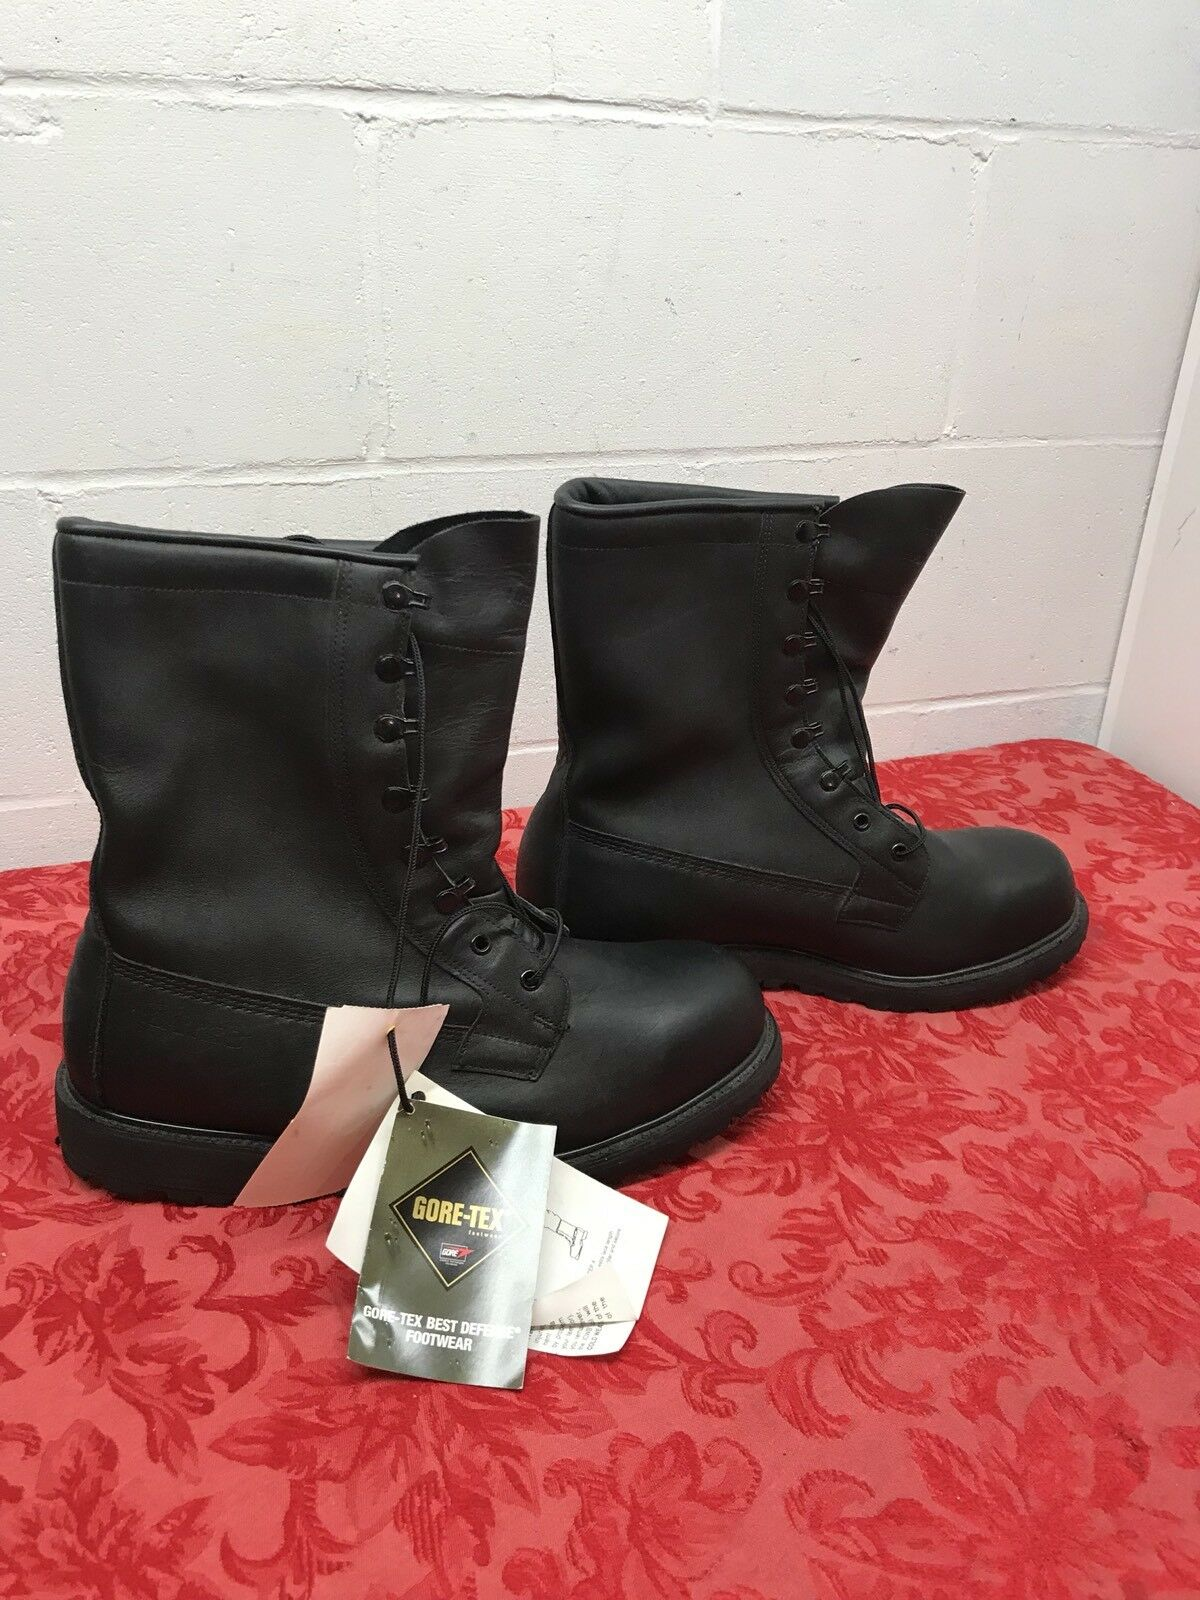 New Gore-Tex Boots Best of Defense Military Boots Size 11.1 2 W Bates Steel Toe